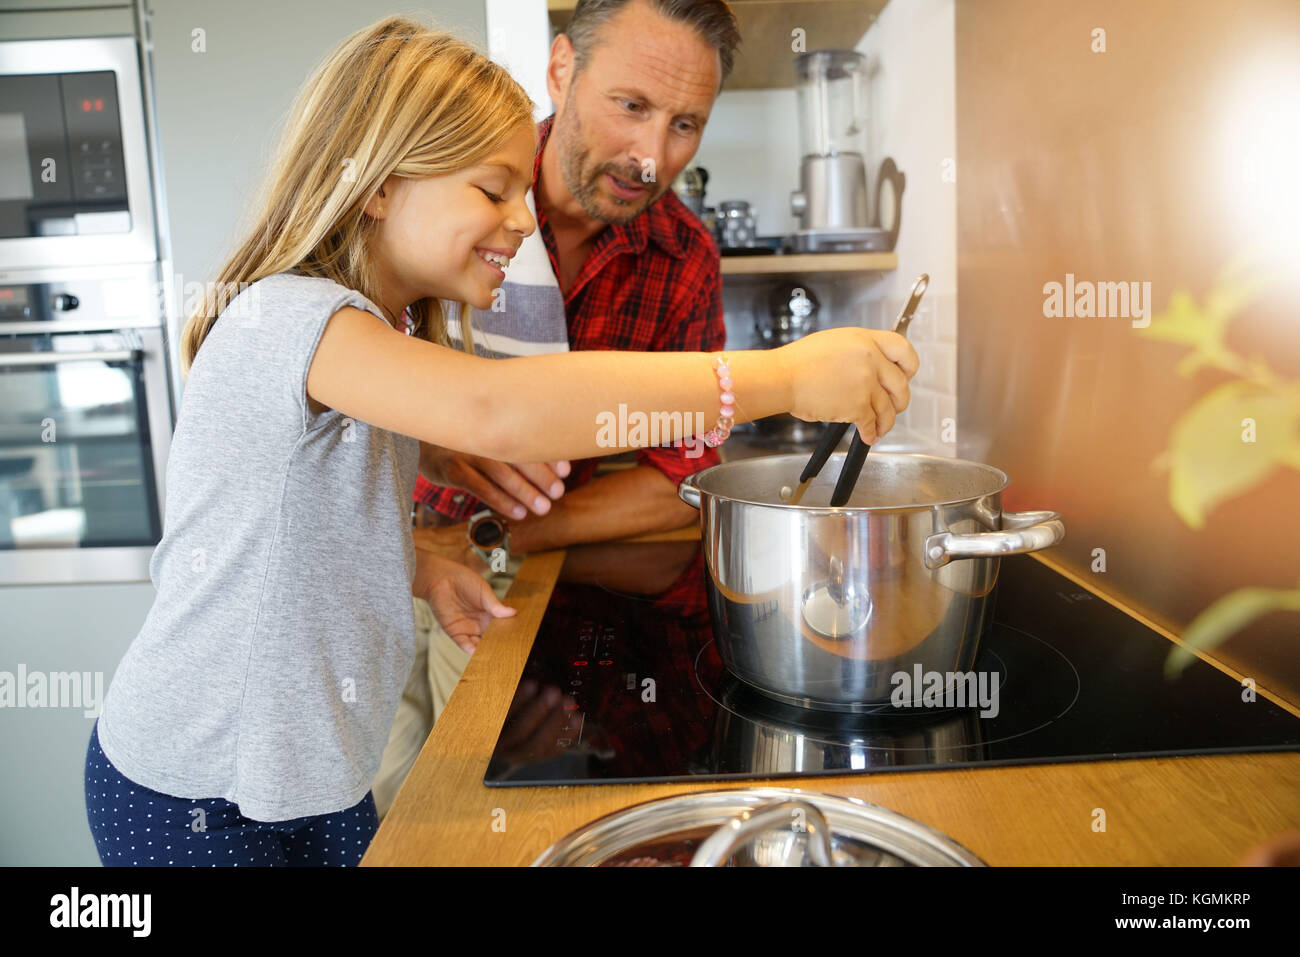 Daddy with daughter cooking together in home kitchen - Stock Image